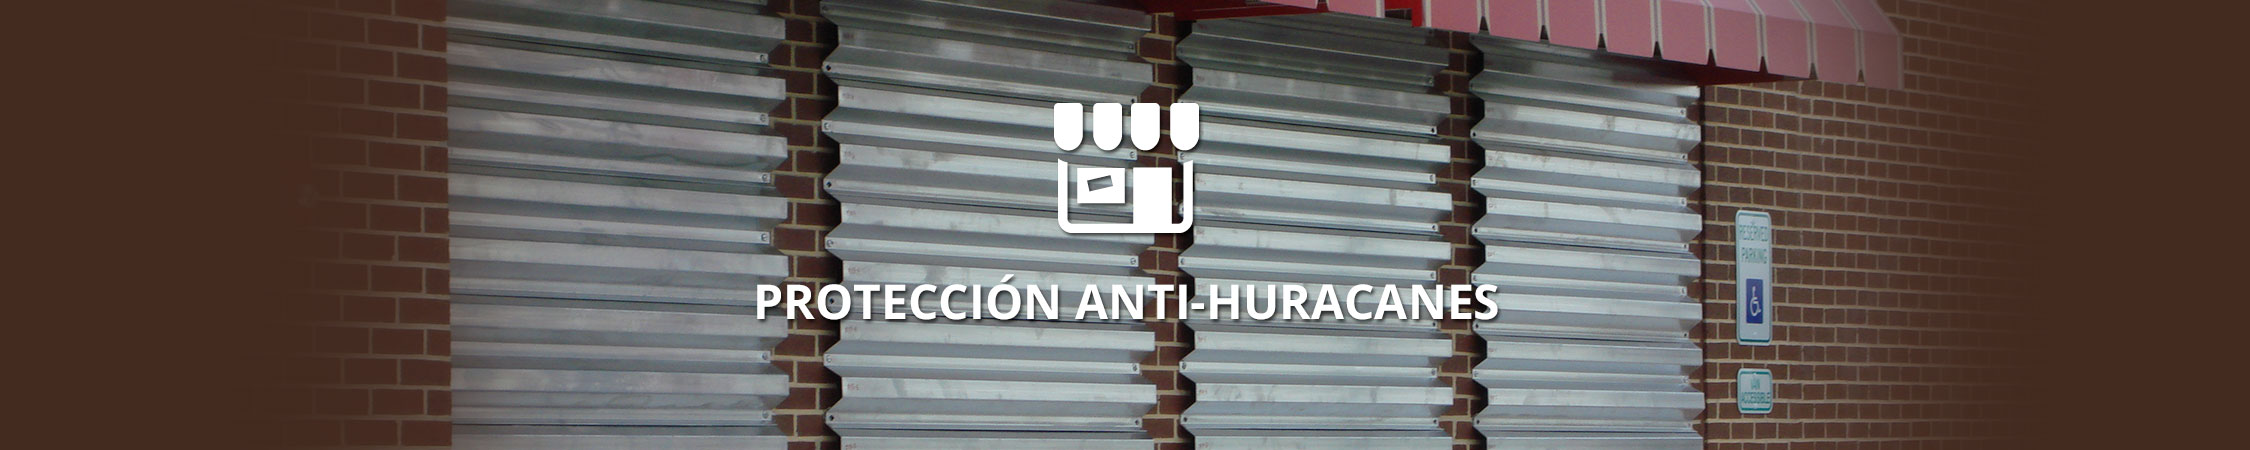 Proteccion Anti-huracanes - Rolltex Shutters